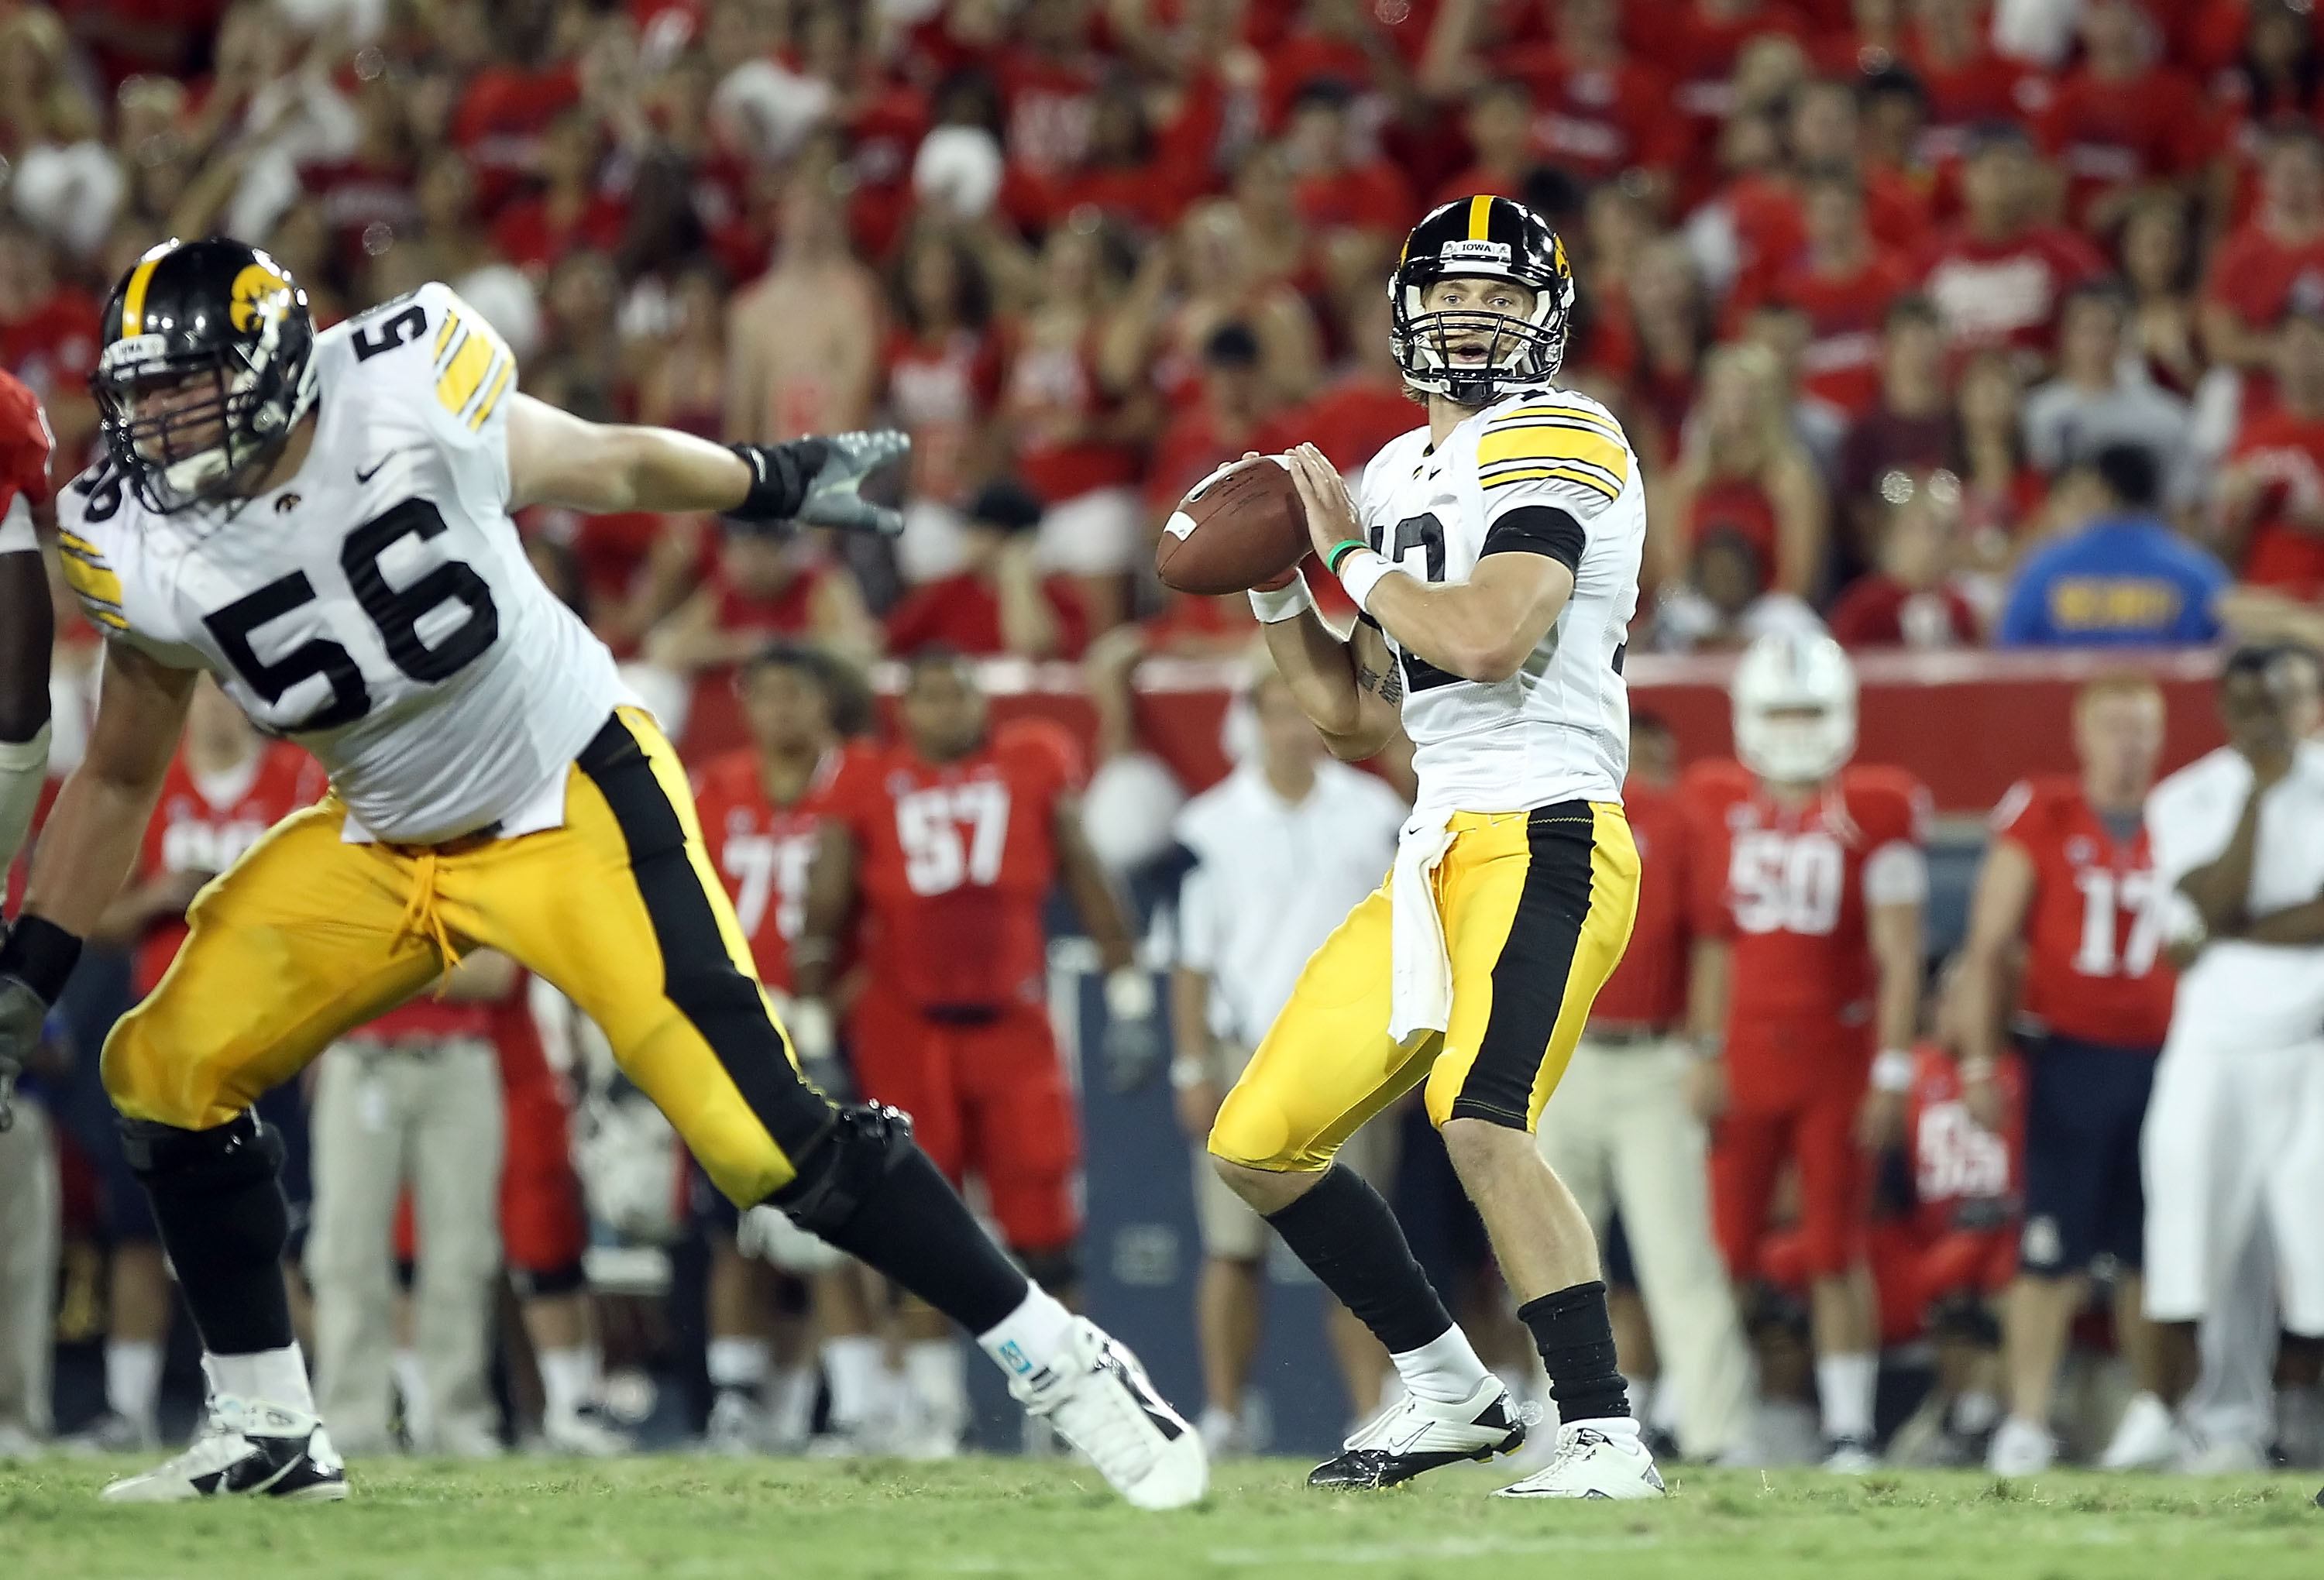 TUCSON, AZ - SEPTEMBER 18:  Quarterback Ricky Stanzi #12 of the Iowa Hawkeyes drops back to pass during the college football game against the Arizona Wildcats at Arizona Stadium on September 18, 2010 in Tucson, Arizona.  The Wildcats defeated the Hawkeyes